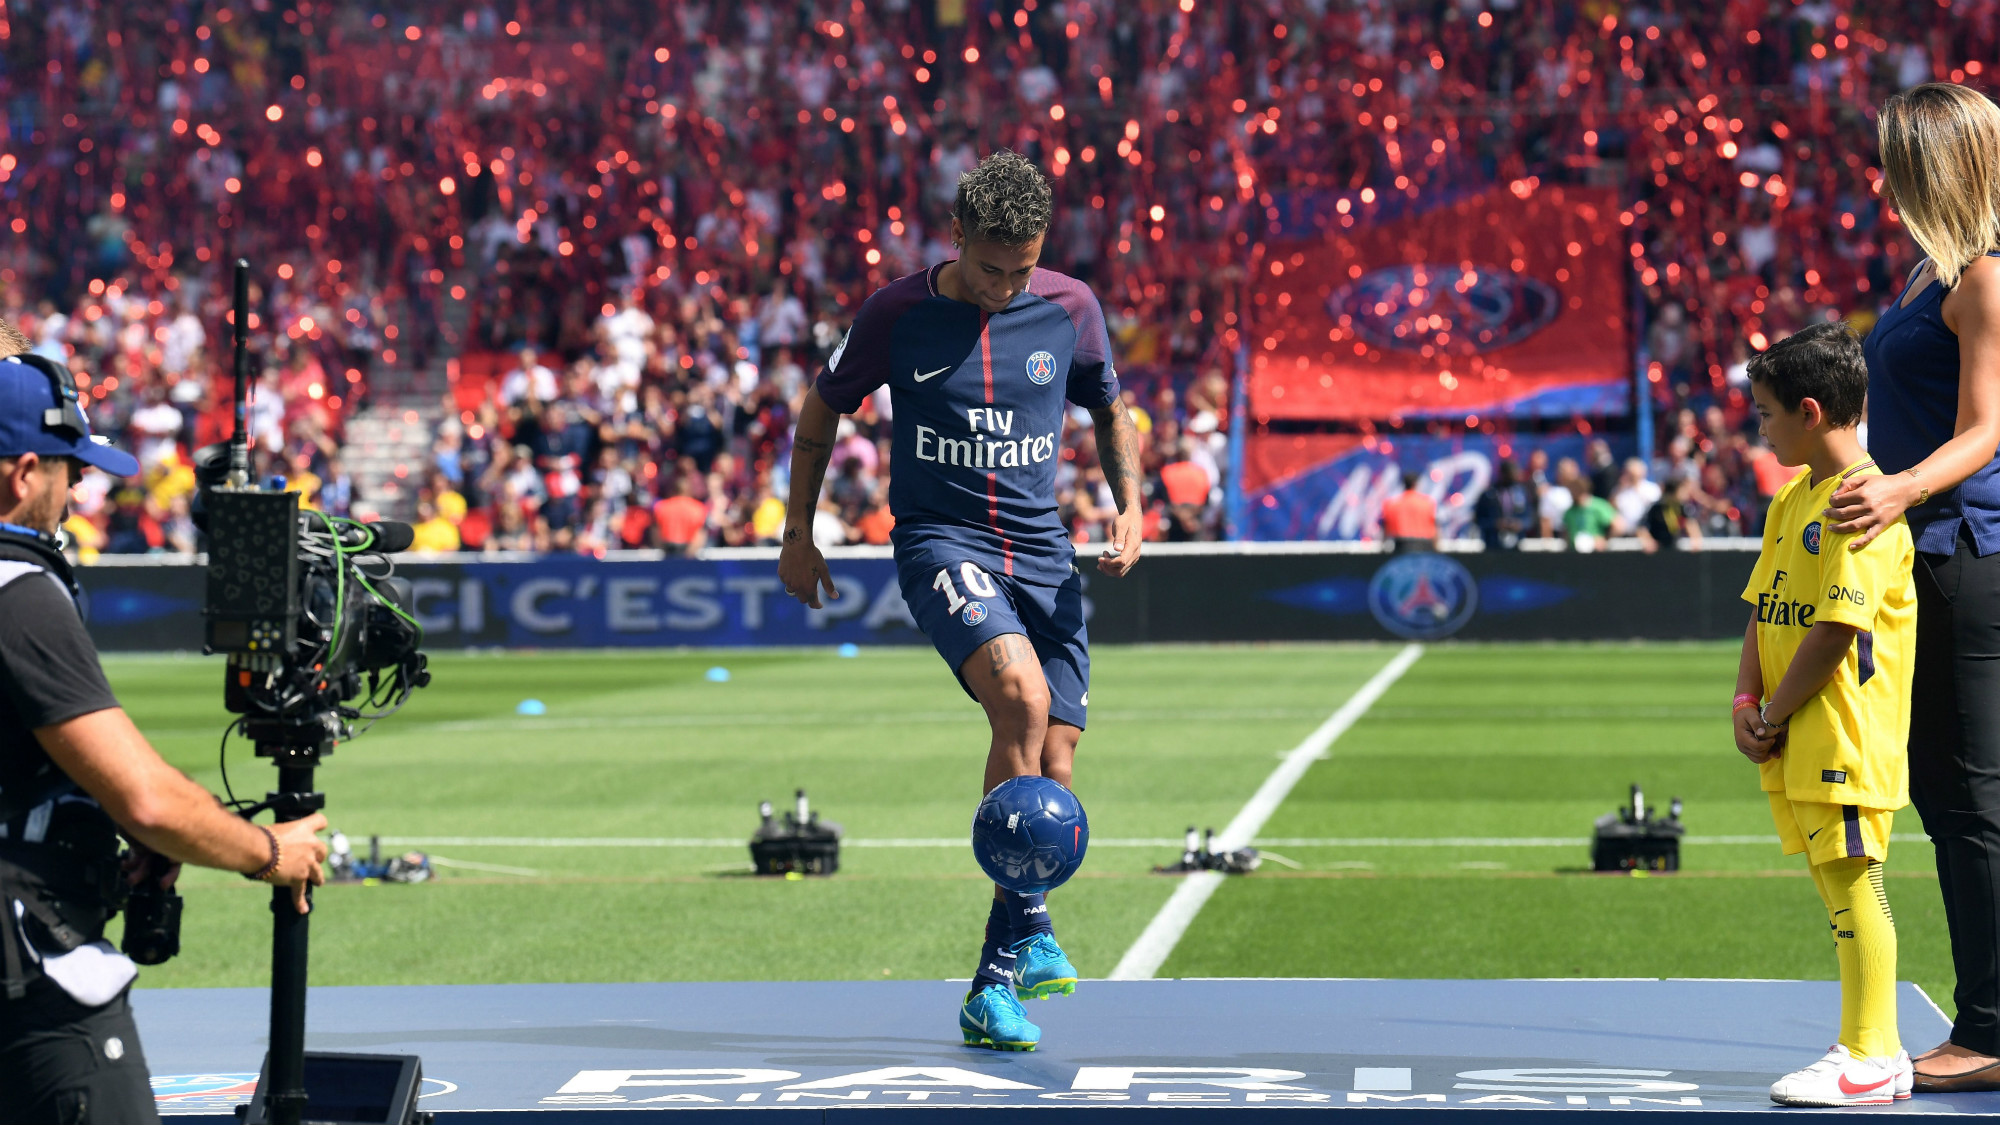 PSG: Ligue 1: Neymar Proves To Be PSG's Man To Watch